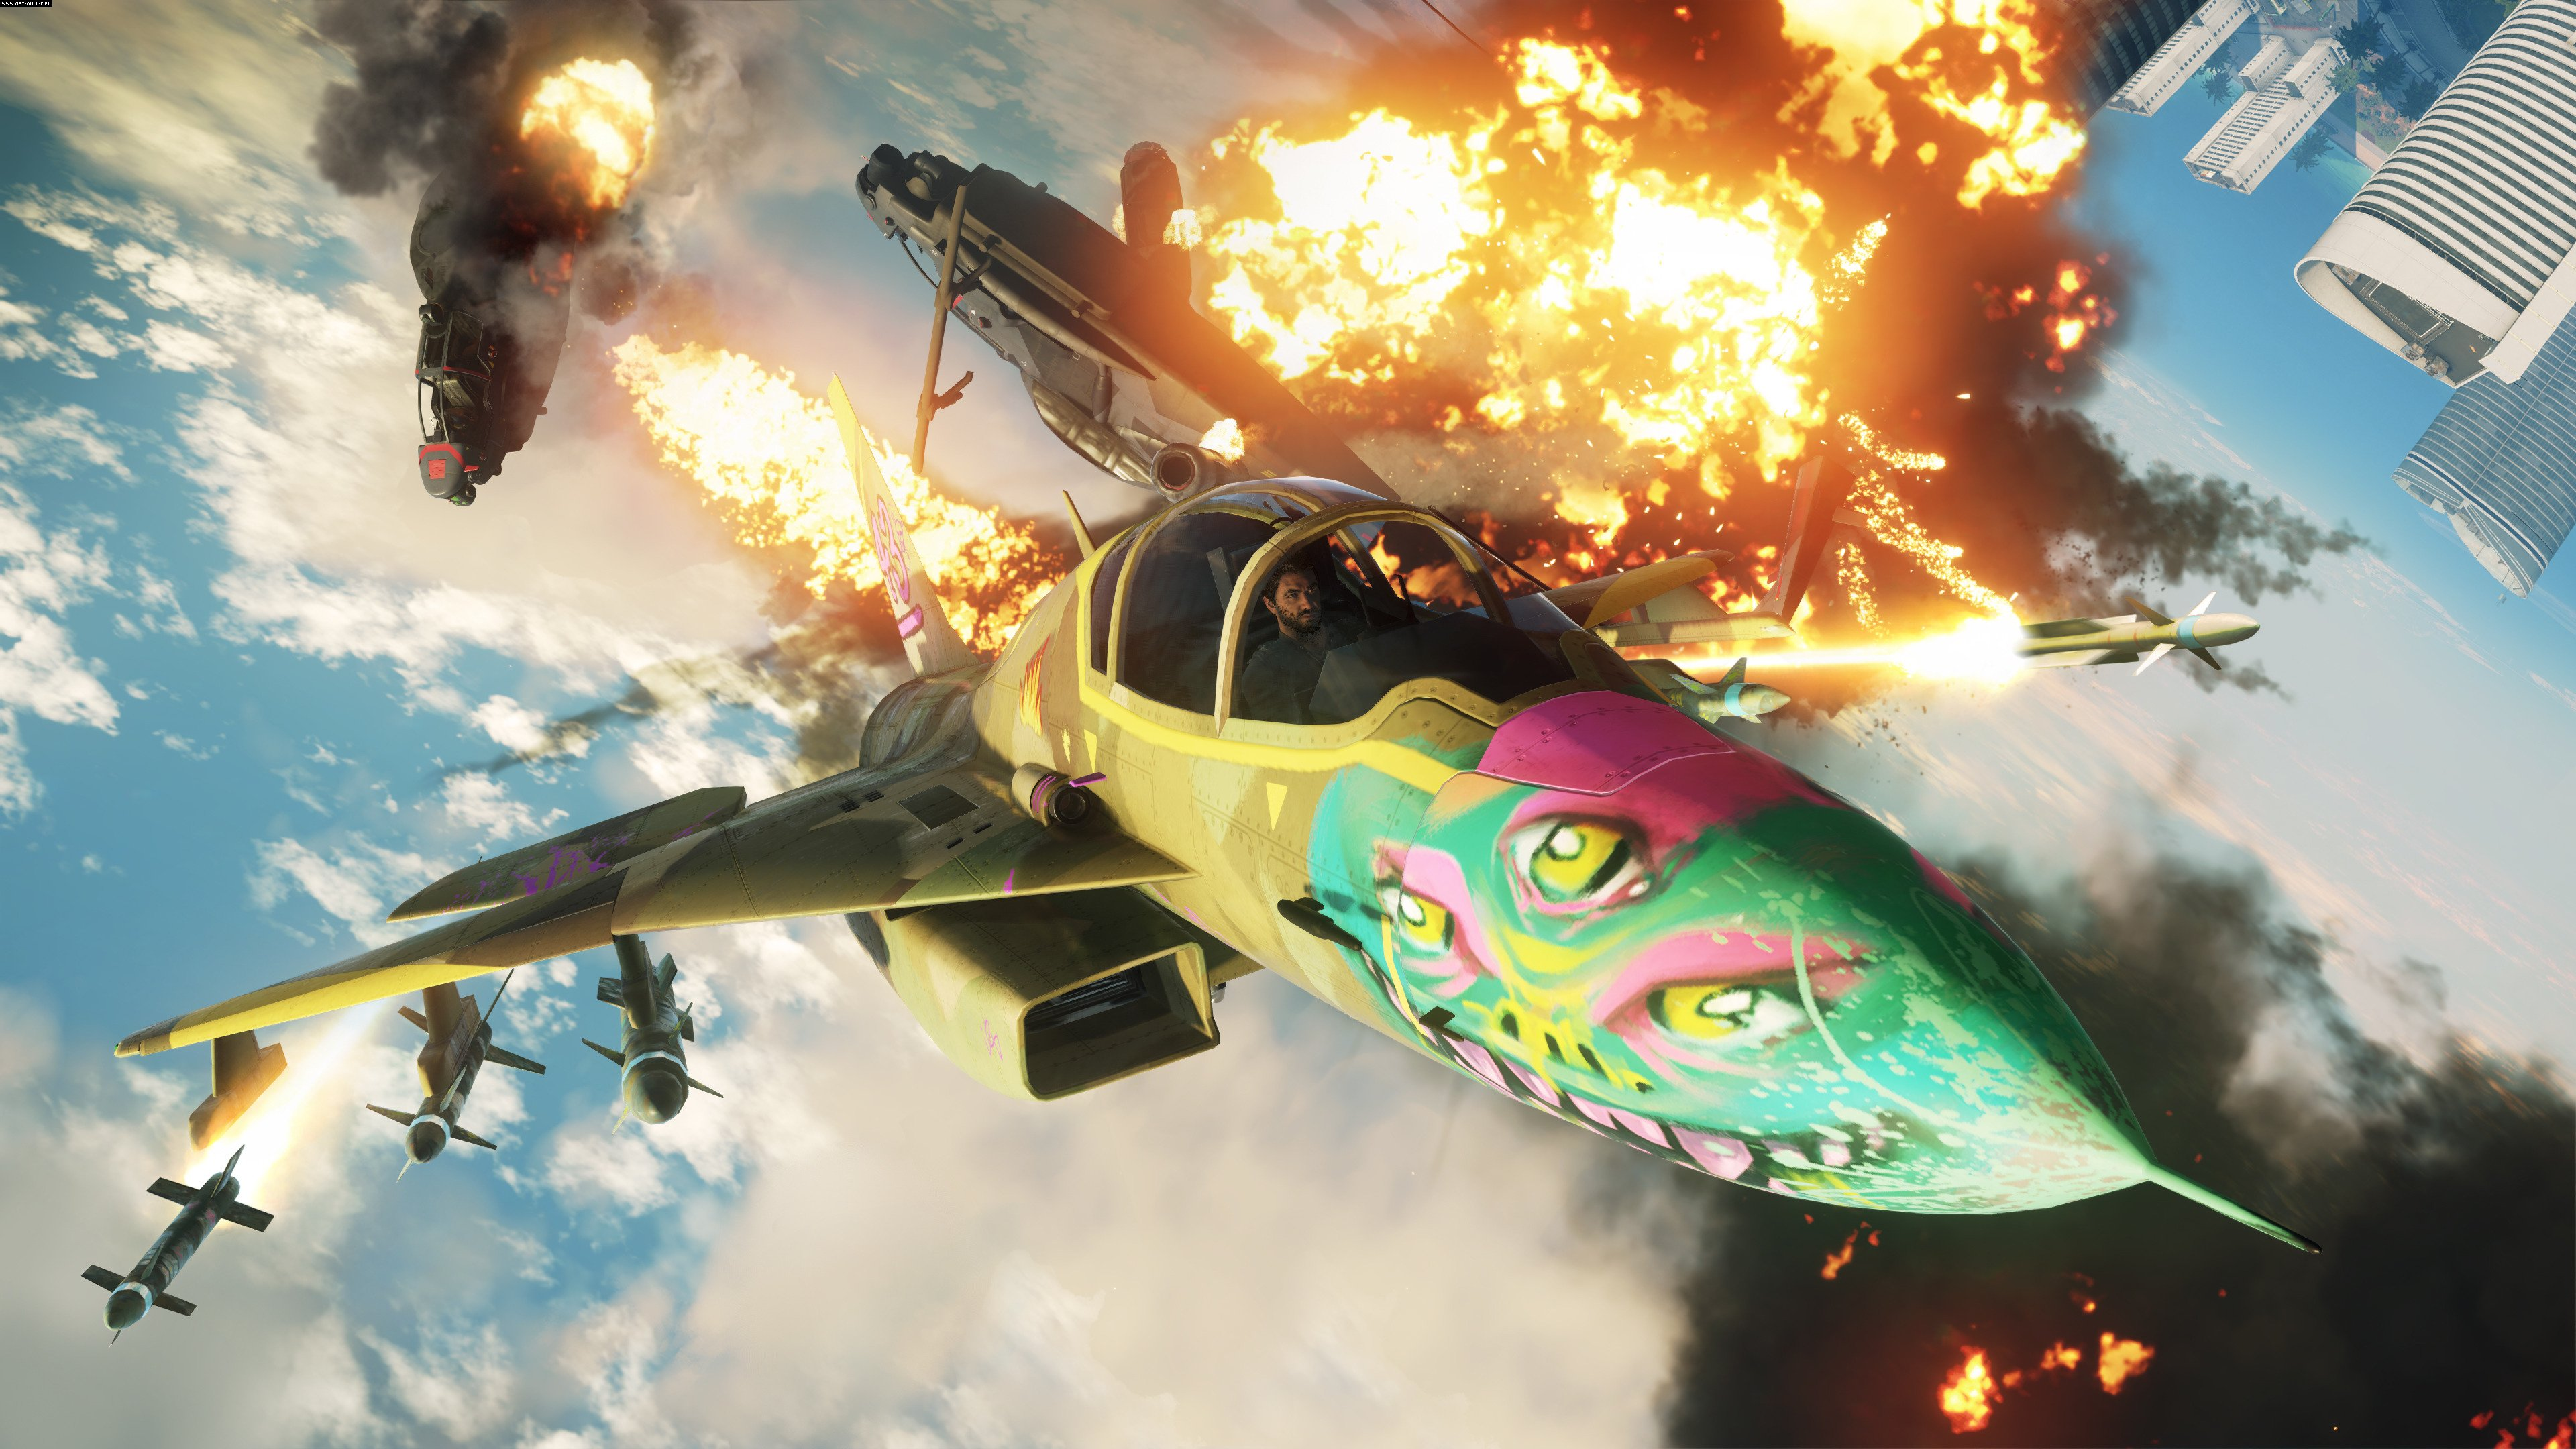 Just Cause 4 PC, PS4, XONE Games Image 2/30, Avalanche Studios, Square-Enix / Eidos